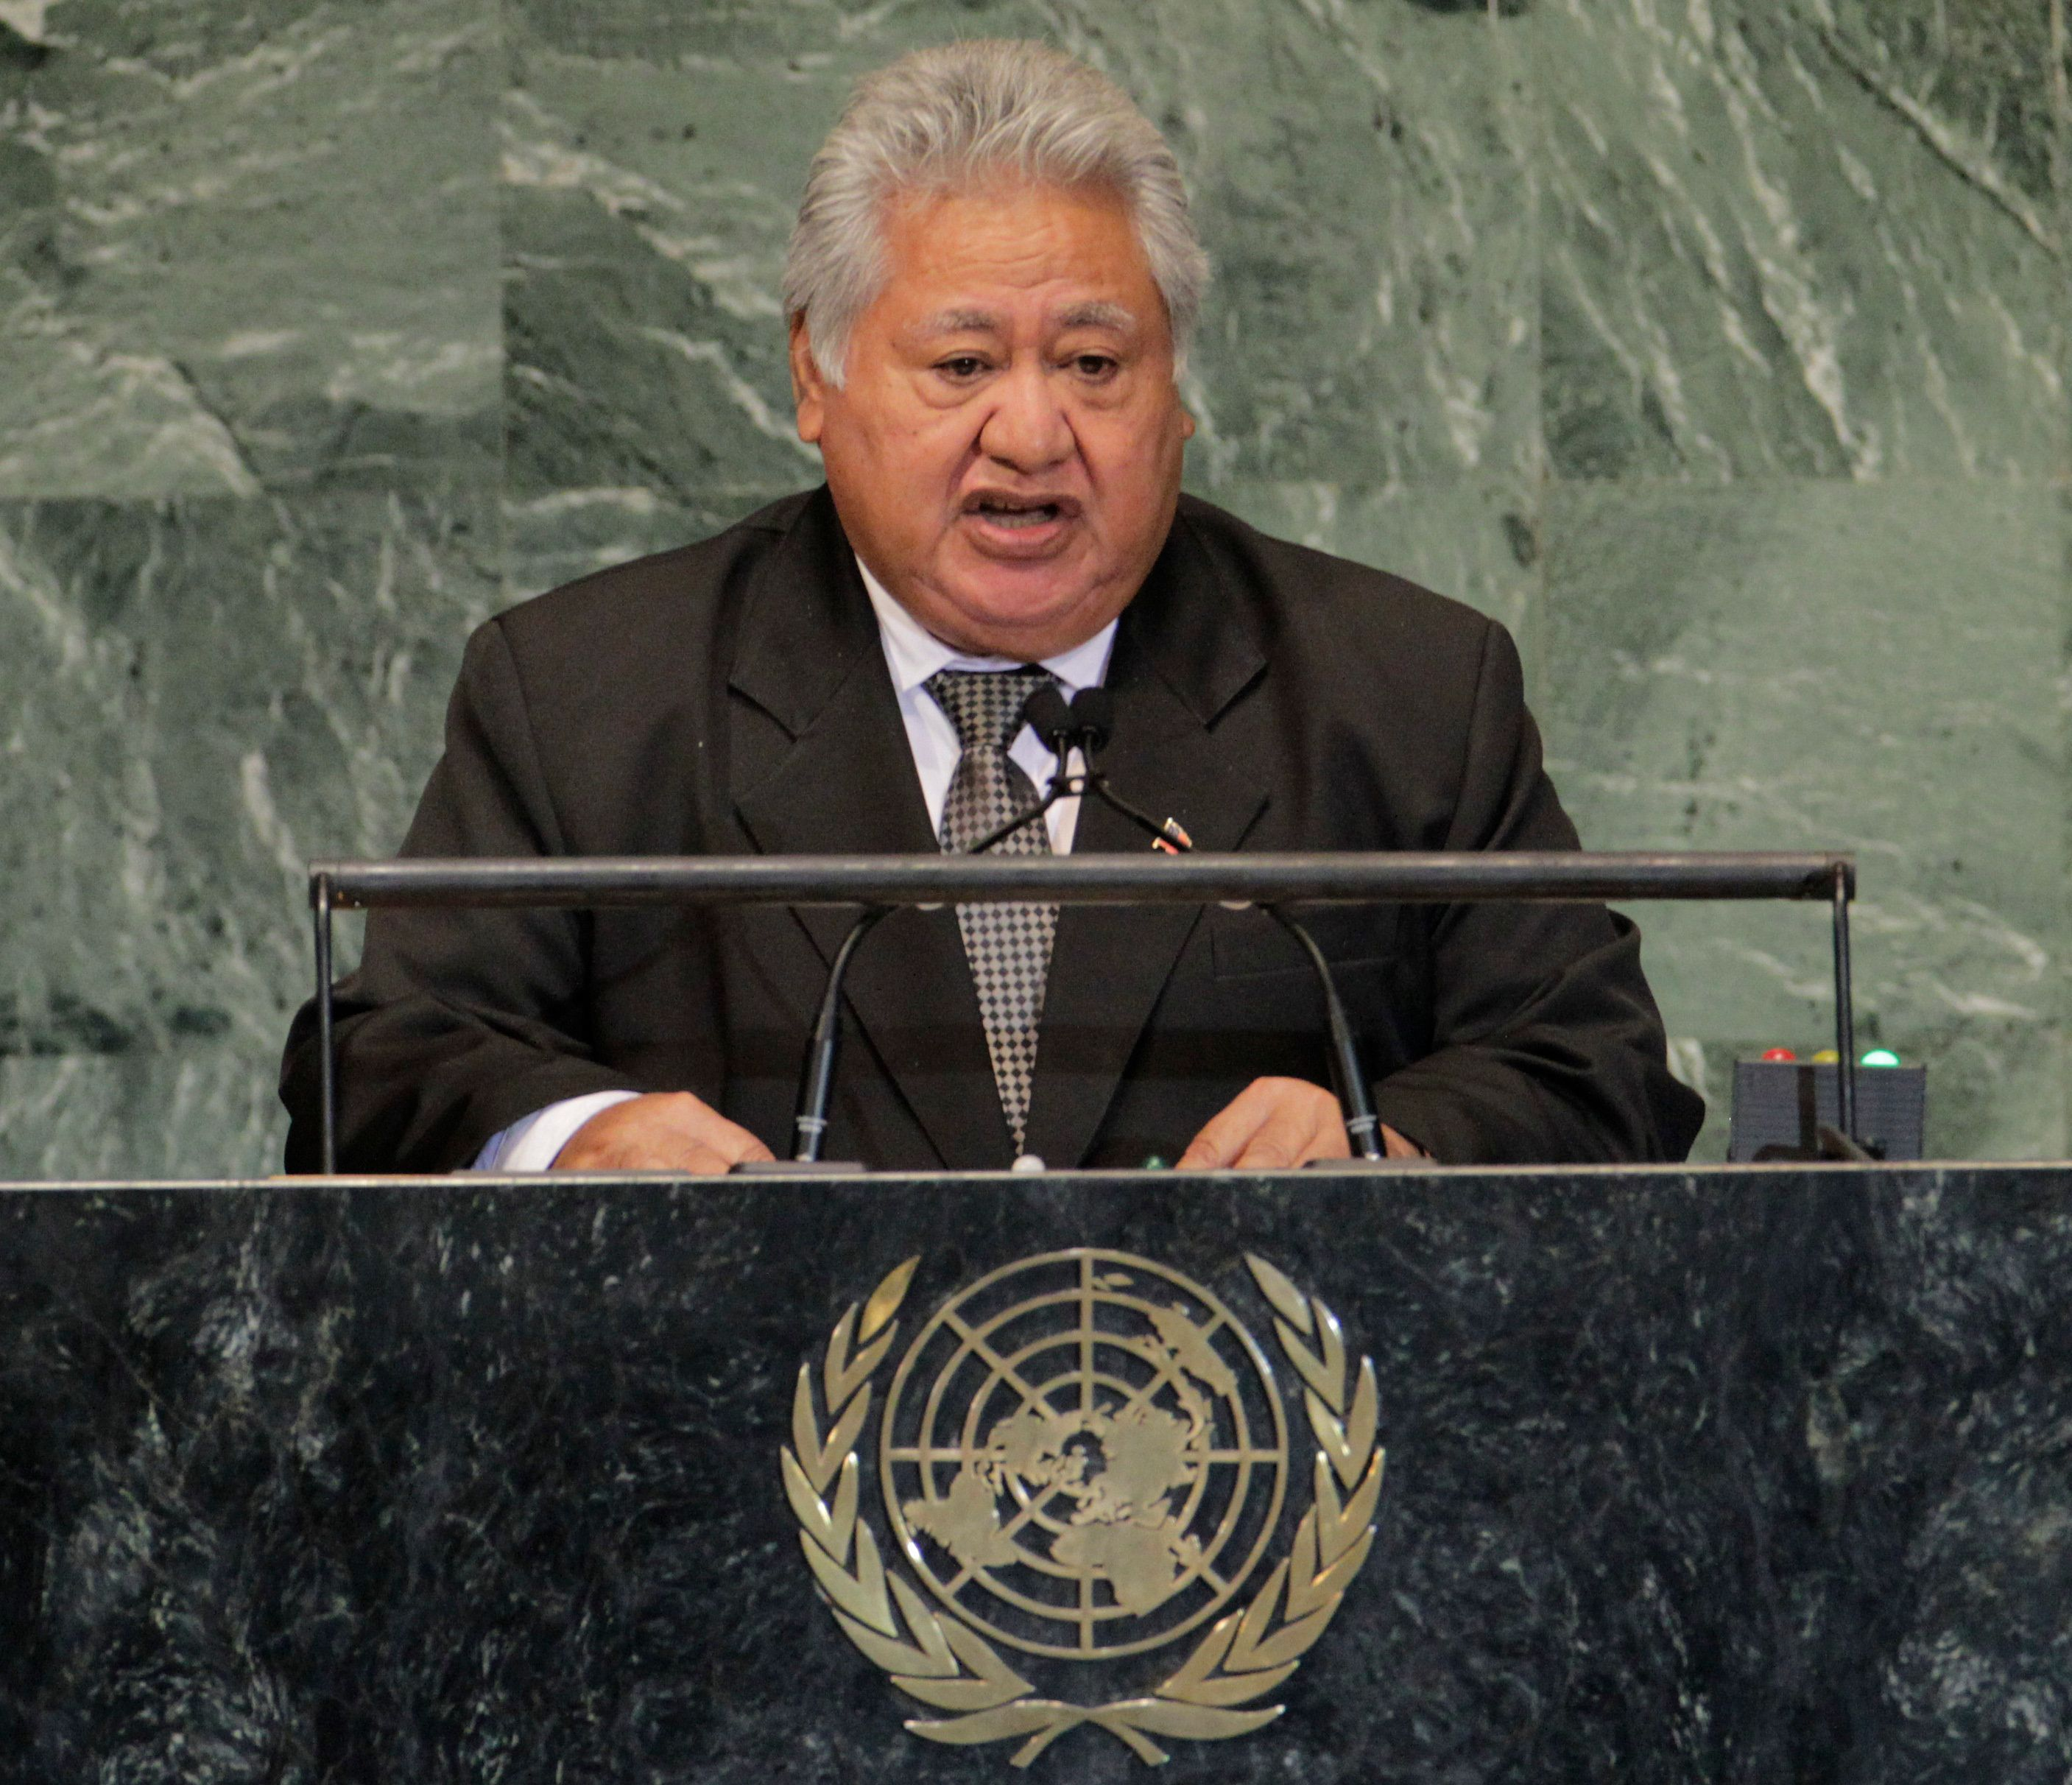 Samoan Prime Minister Tuilaepa Sailele Malielegaoi addresses the 67th United Nations General Assembly at the U.N. Headquarters in New York, September 28, 2012.  REUTERS/Brendan McDermid (UNITED STATES - Tags: POLITICS)